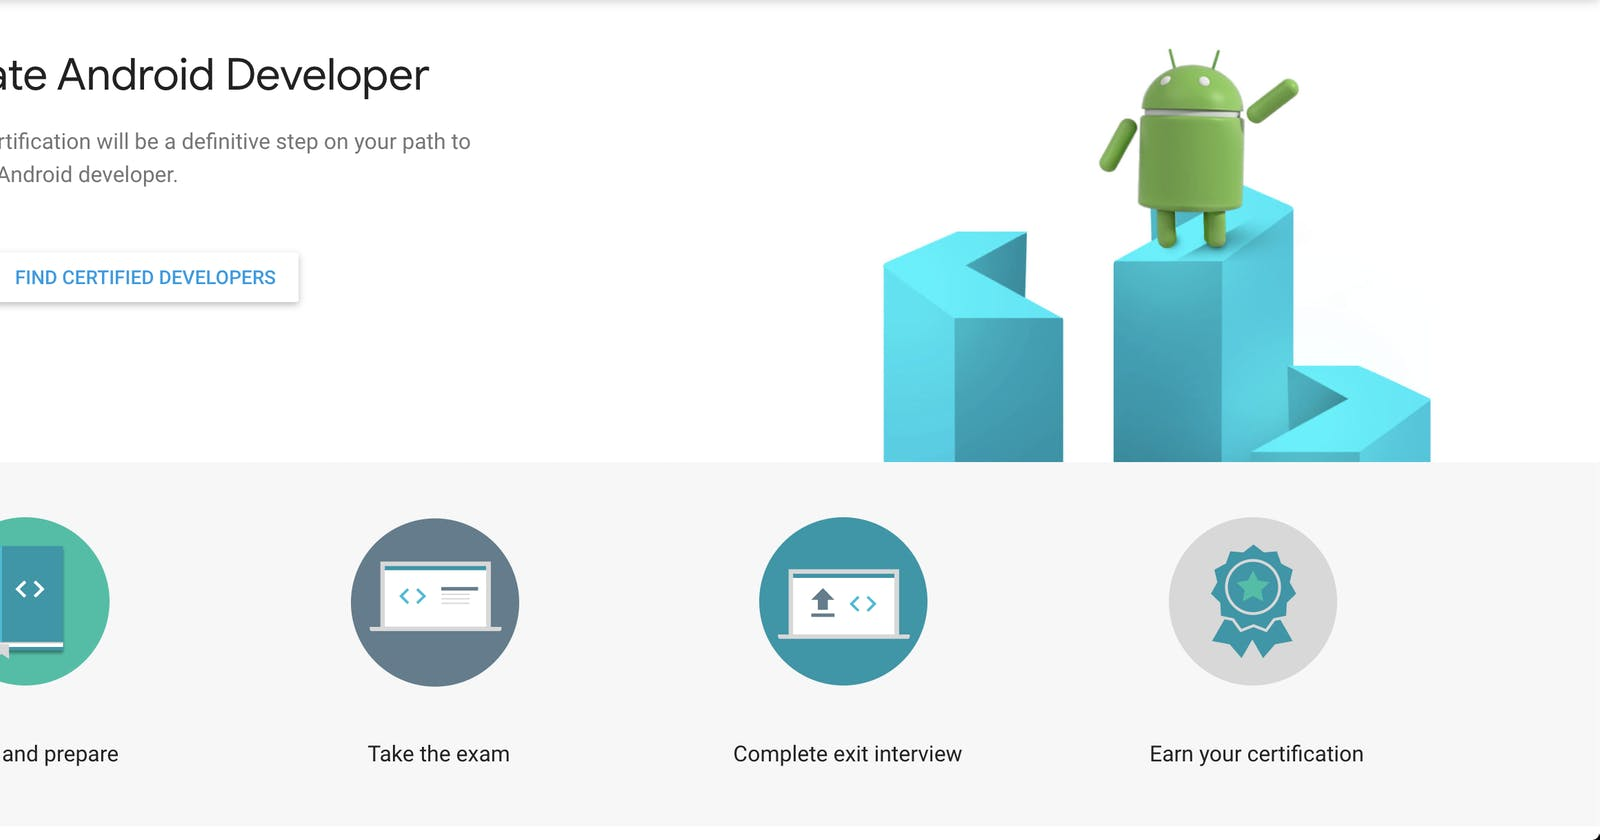 The path to Associate Android Developer Certification